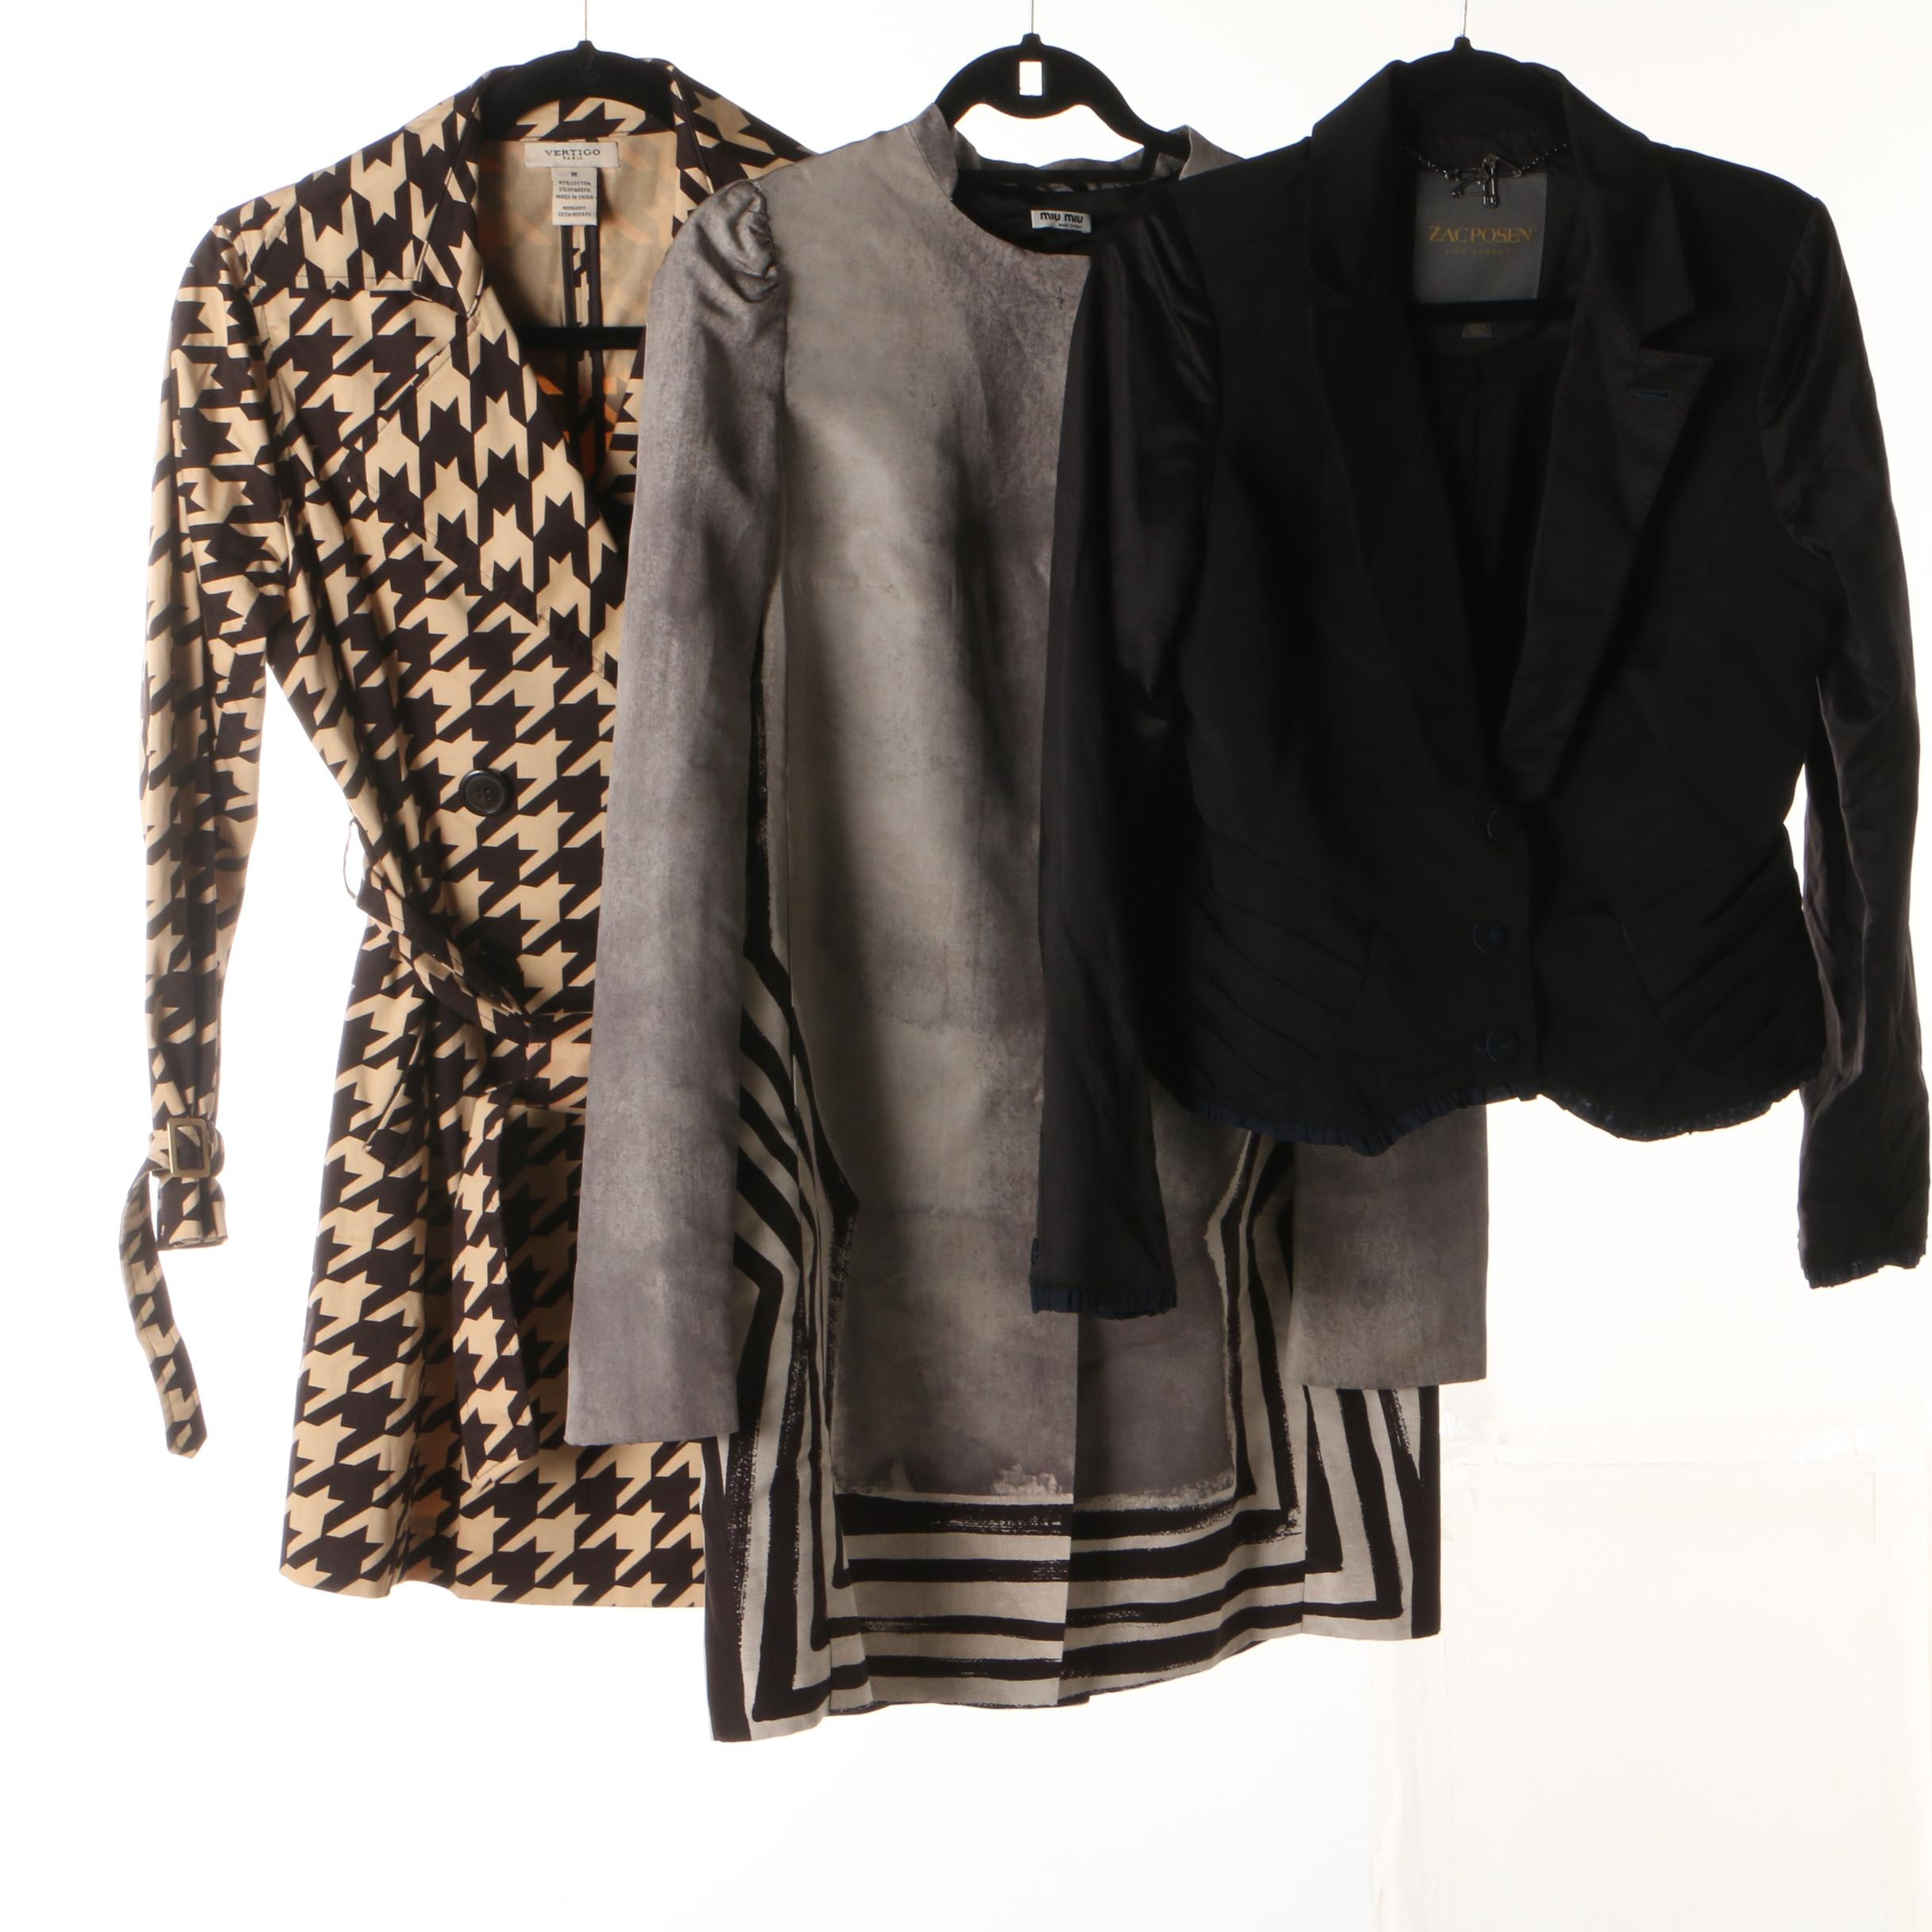 Women's Miu Miu, Vertigo Paris and Zac Posen Coats and Jacket